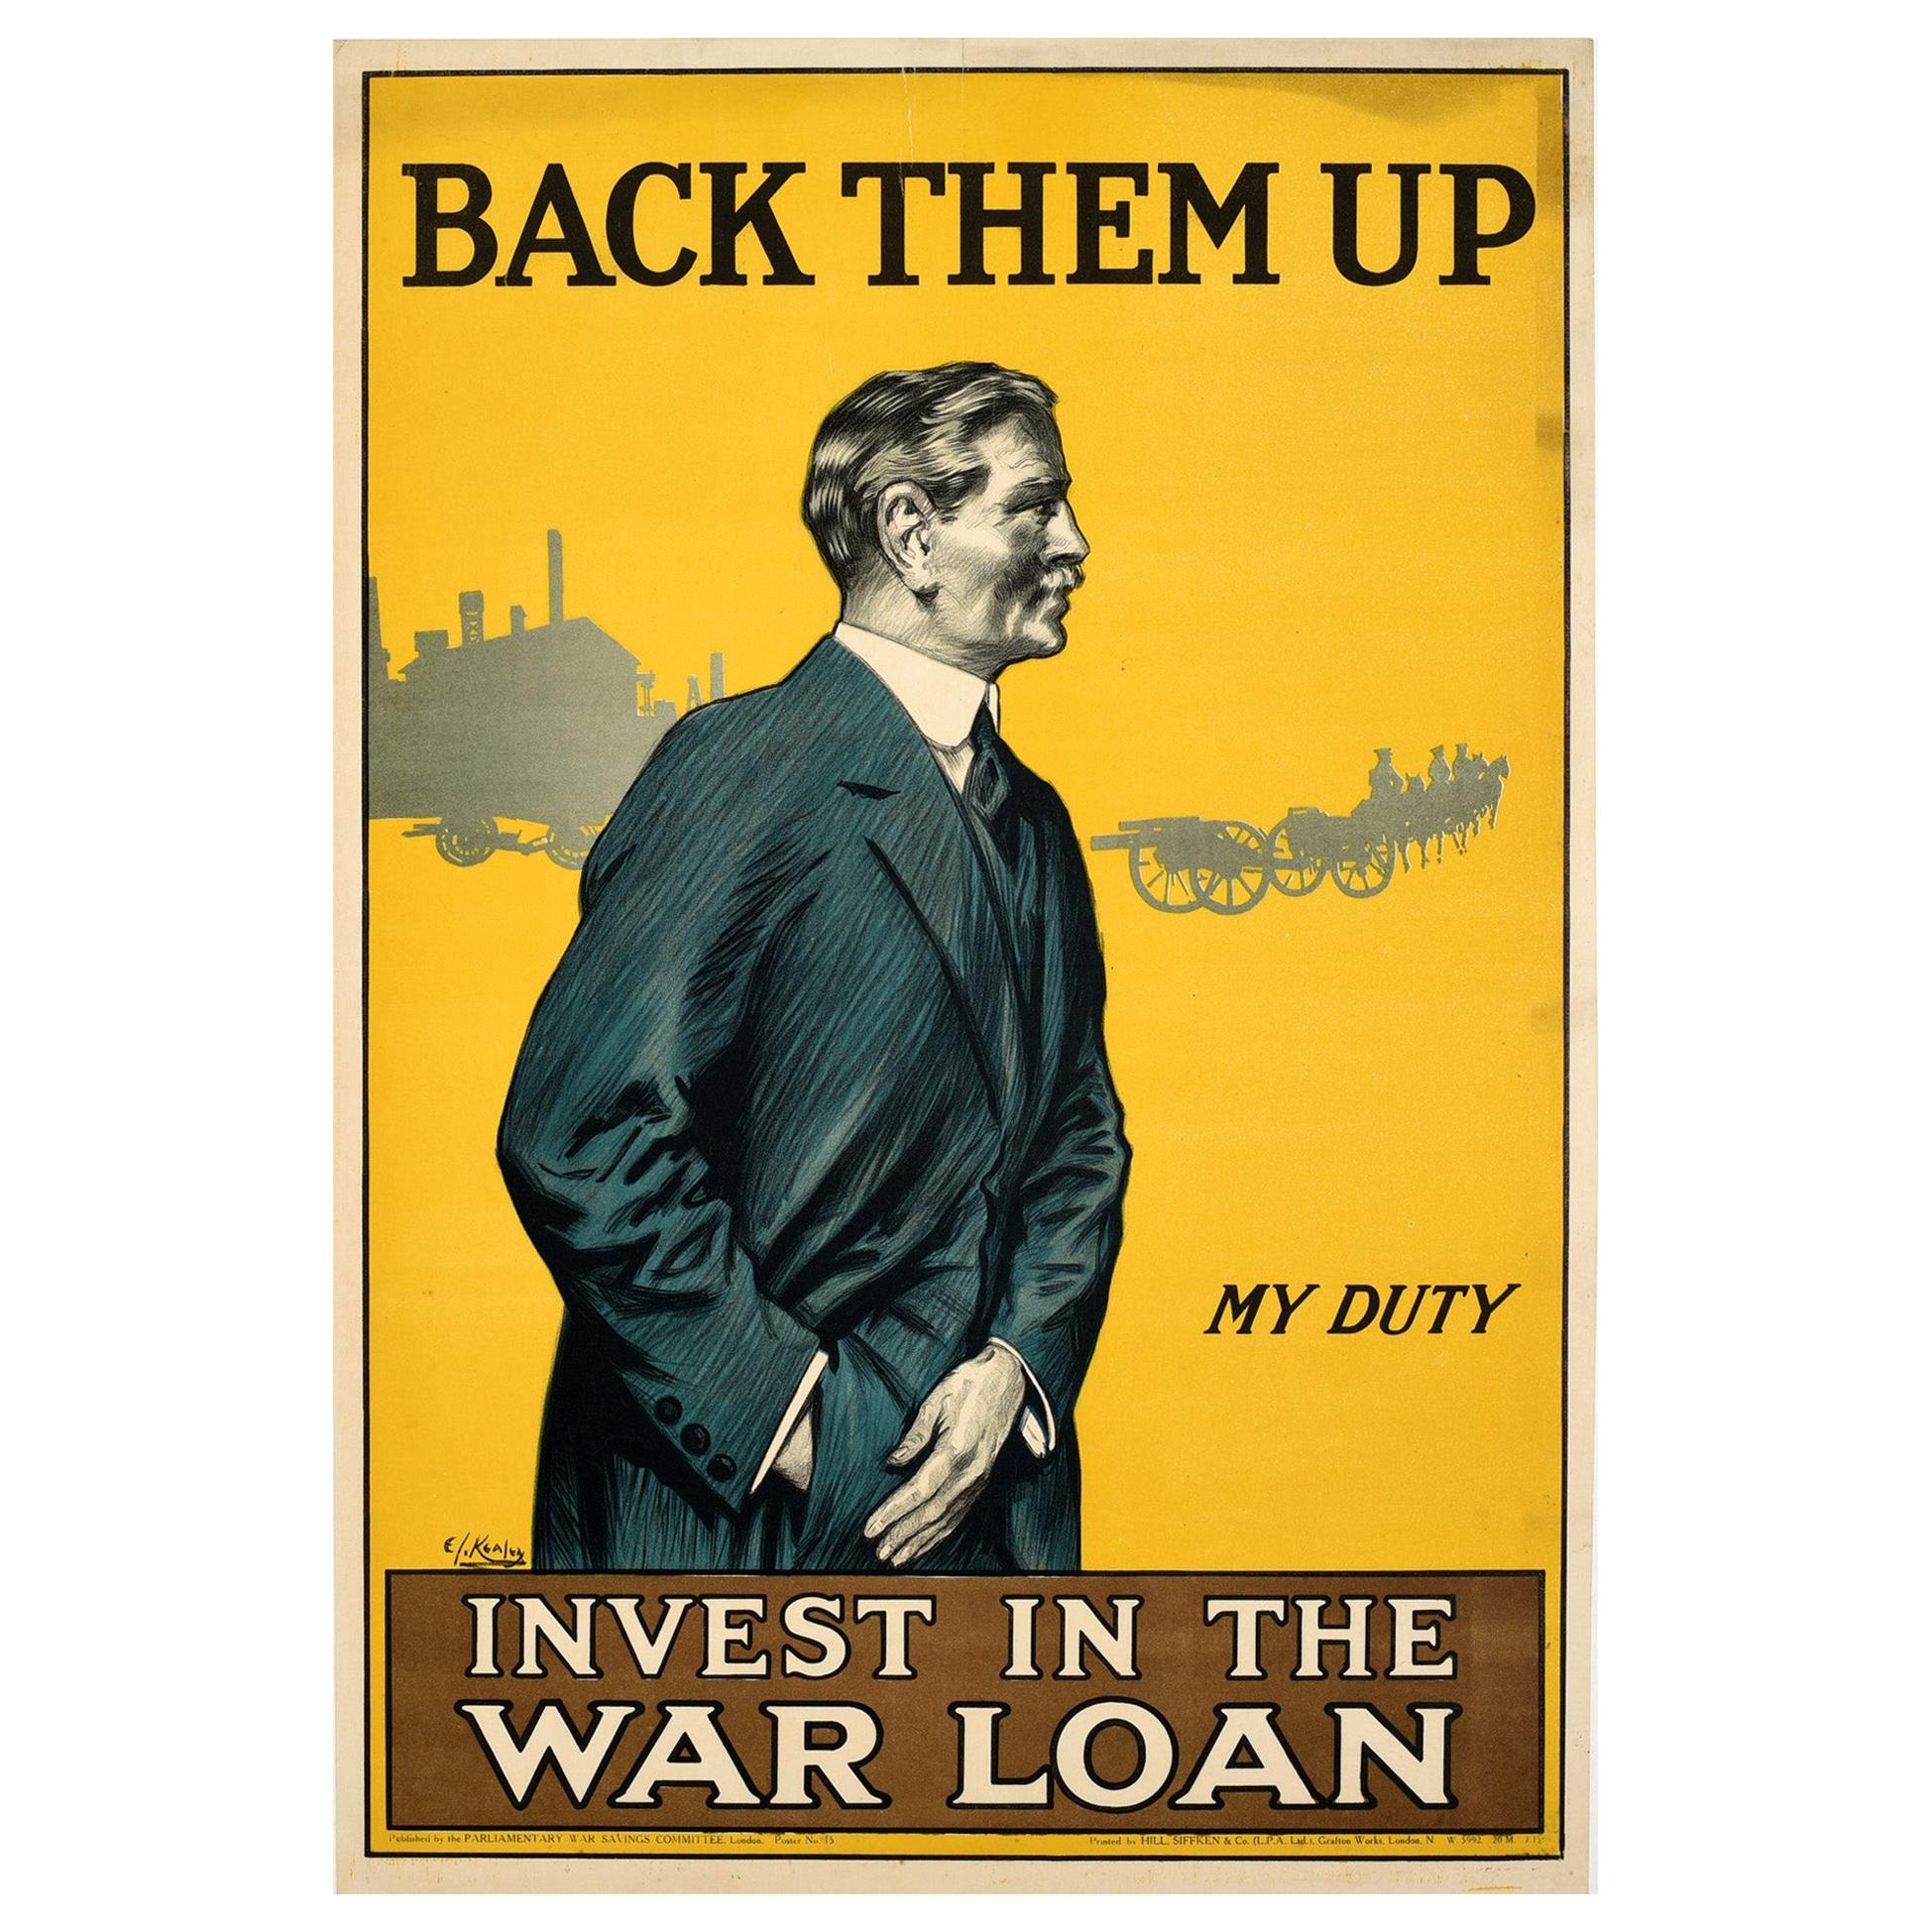 Original Antique WWI Poster Back Them Up Invest In The War Loan My Duty Finance